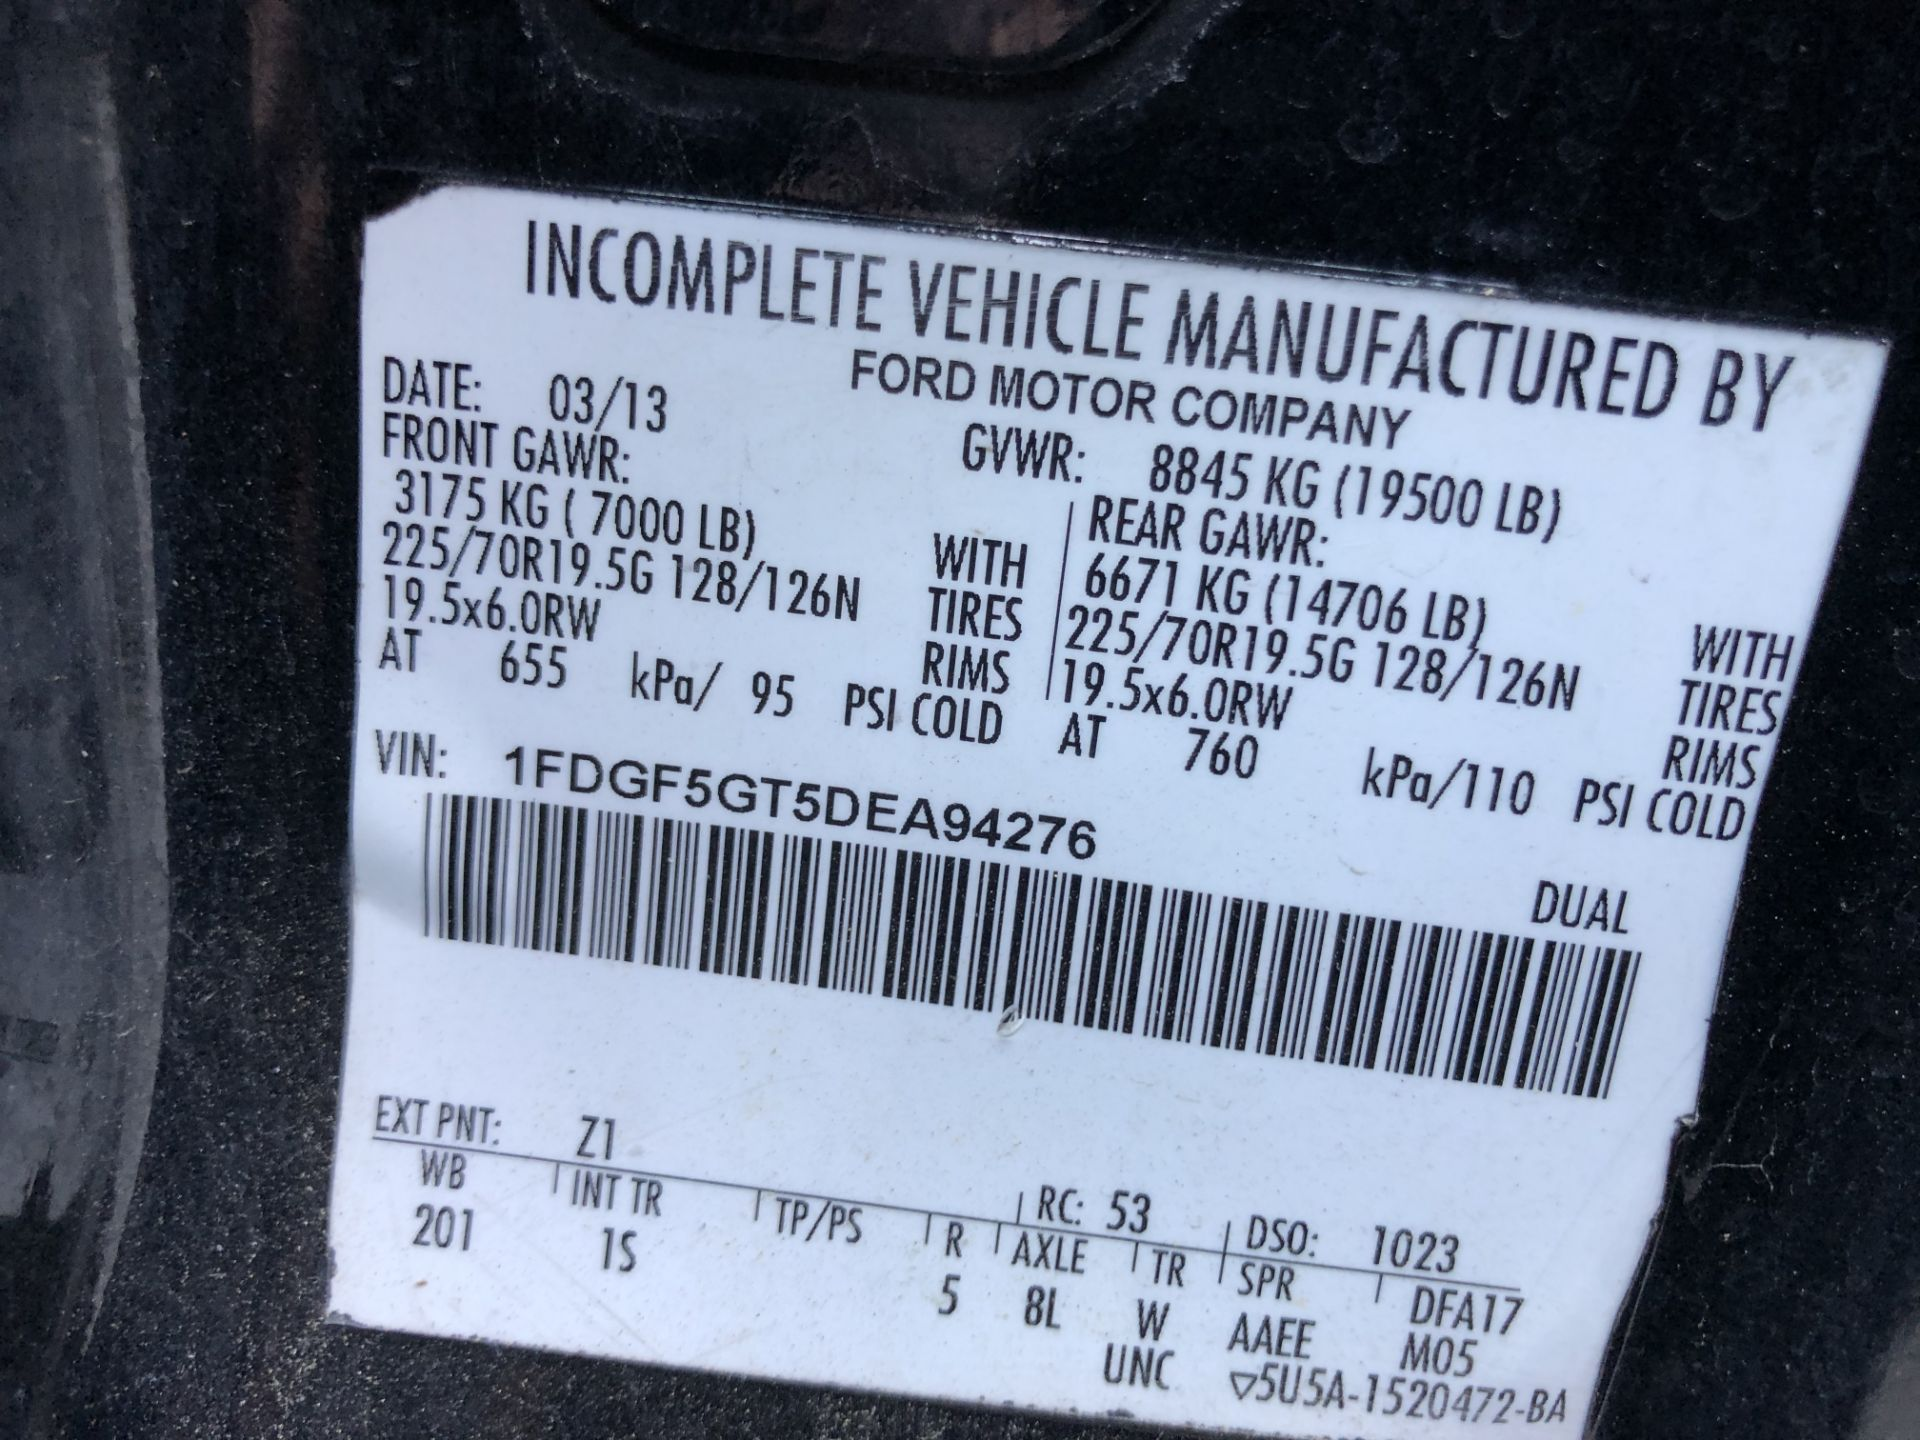 2013 Ford F550SD XL Grech Motors 33-Pass Shuttle Bus - Image 16 of 18